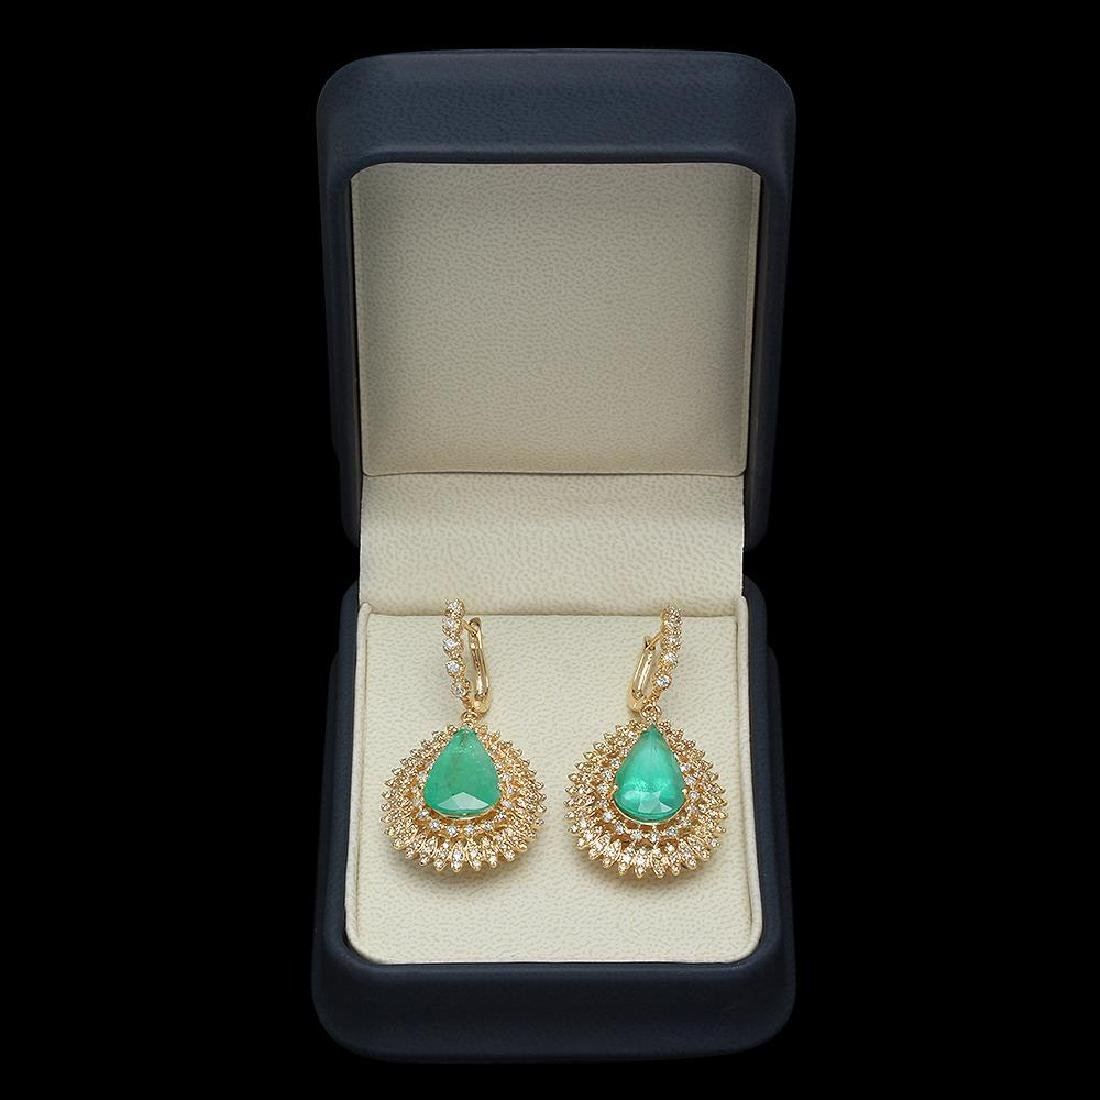 14K Gold 13.73ct Emerald 4.01ct Diamond Earrings - 3